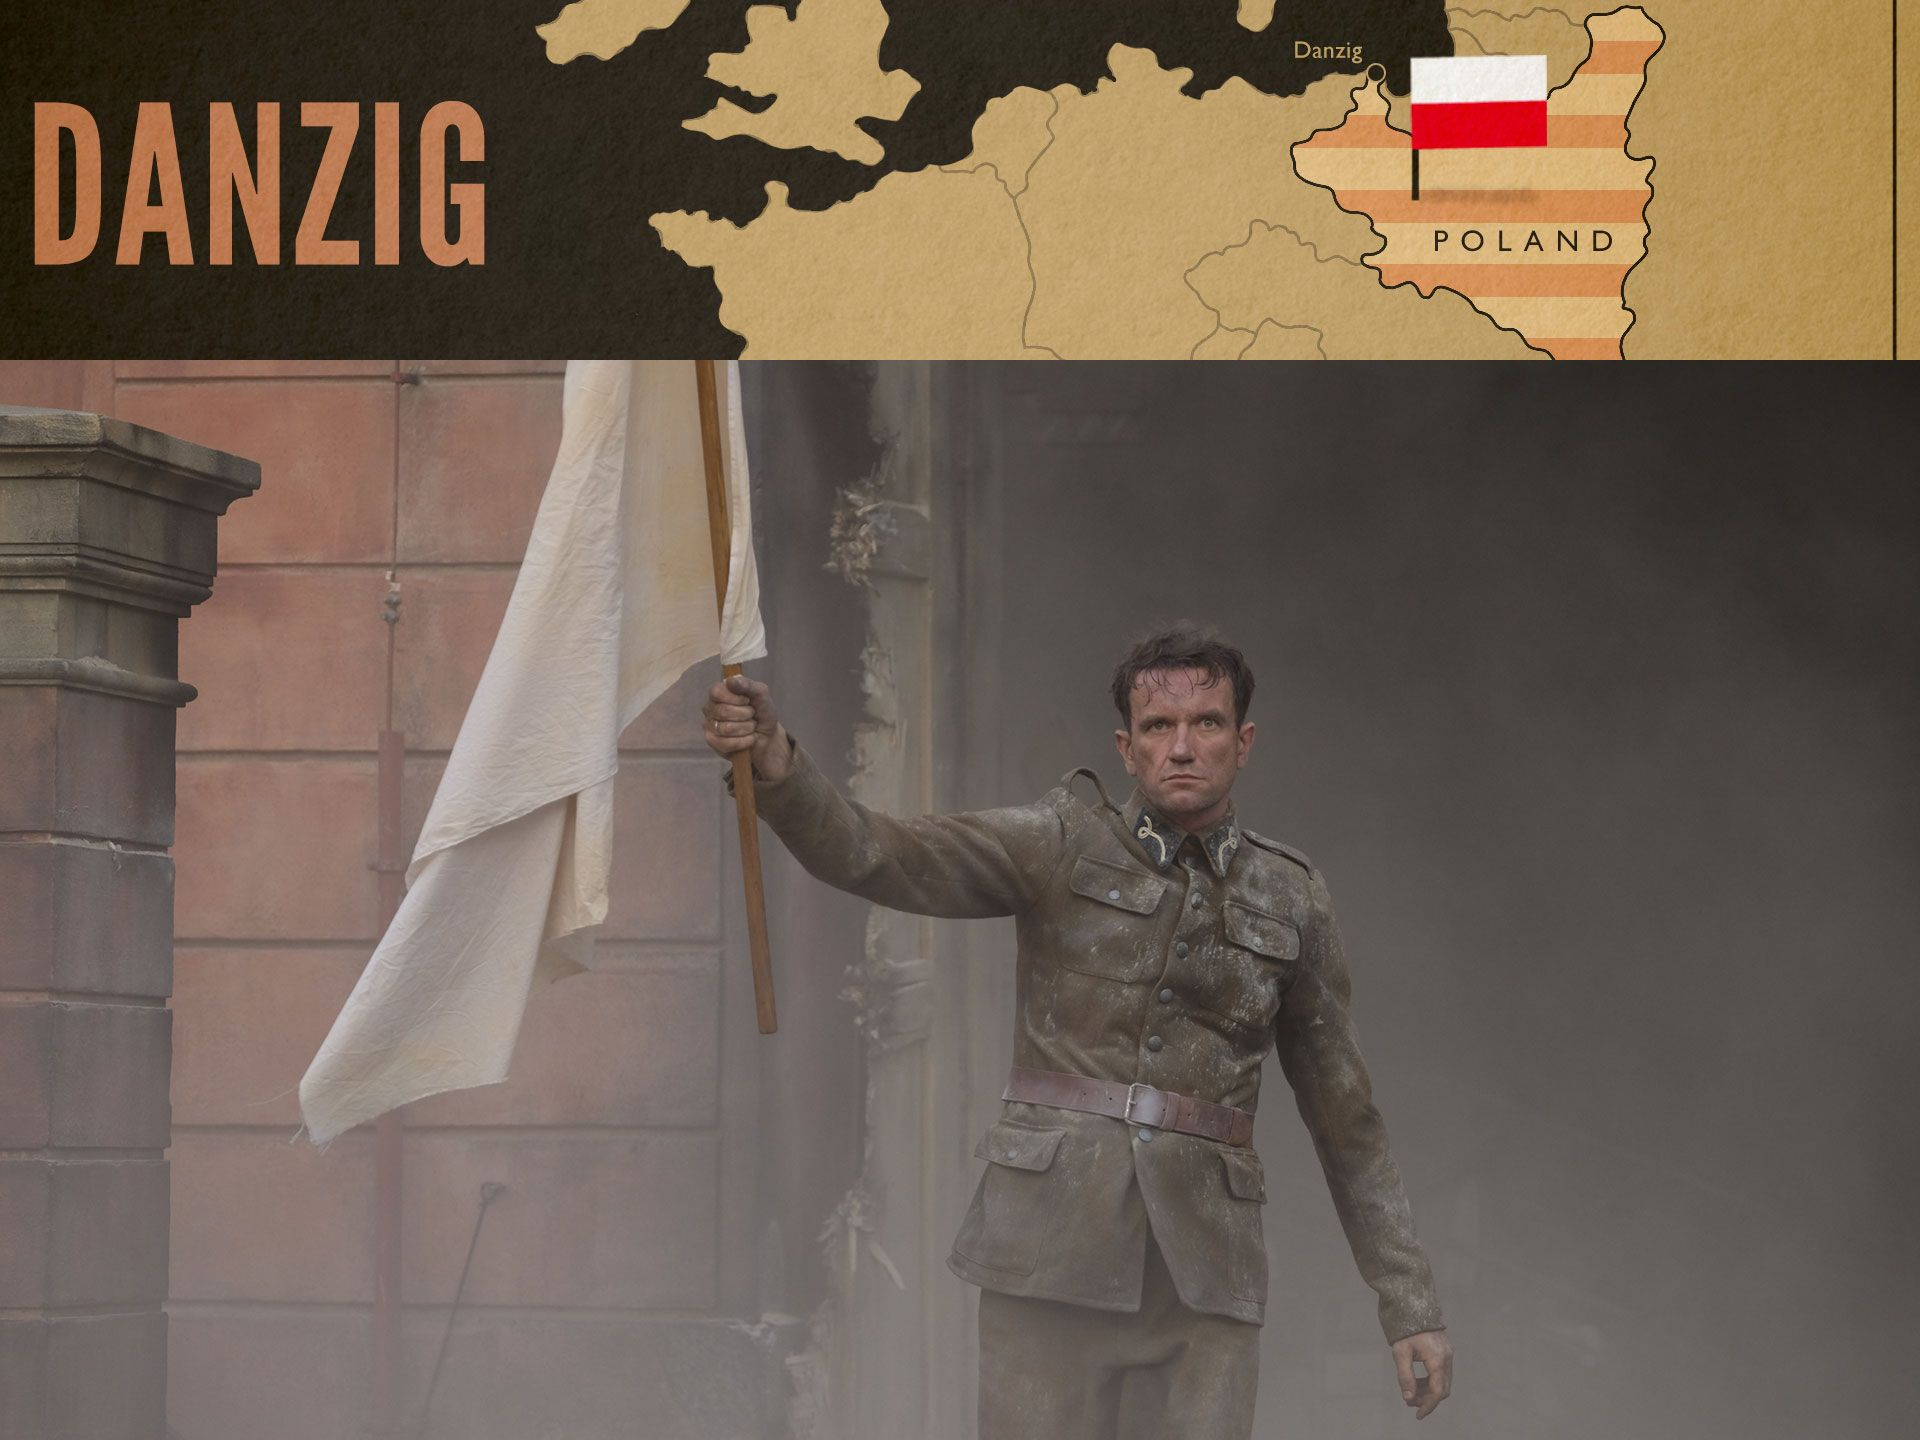 Stefan Tomaszeski surrenders at the Polish post office in Danzig in World on Fire Episode 1